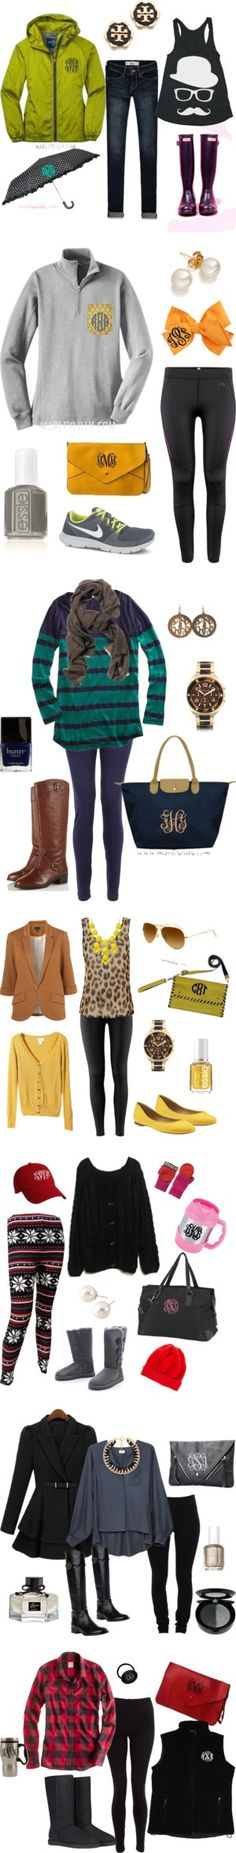 """Loco For Leggings!"" by marleylilly on Polyvore"